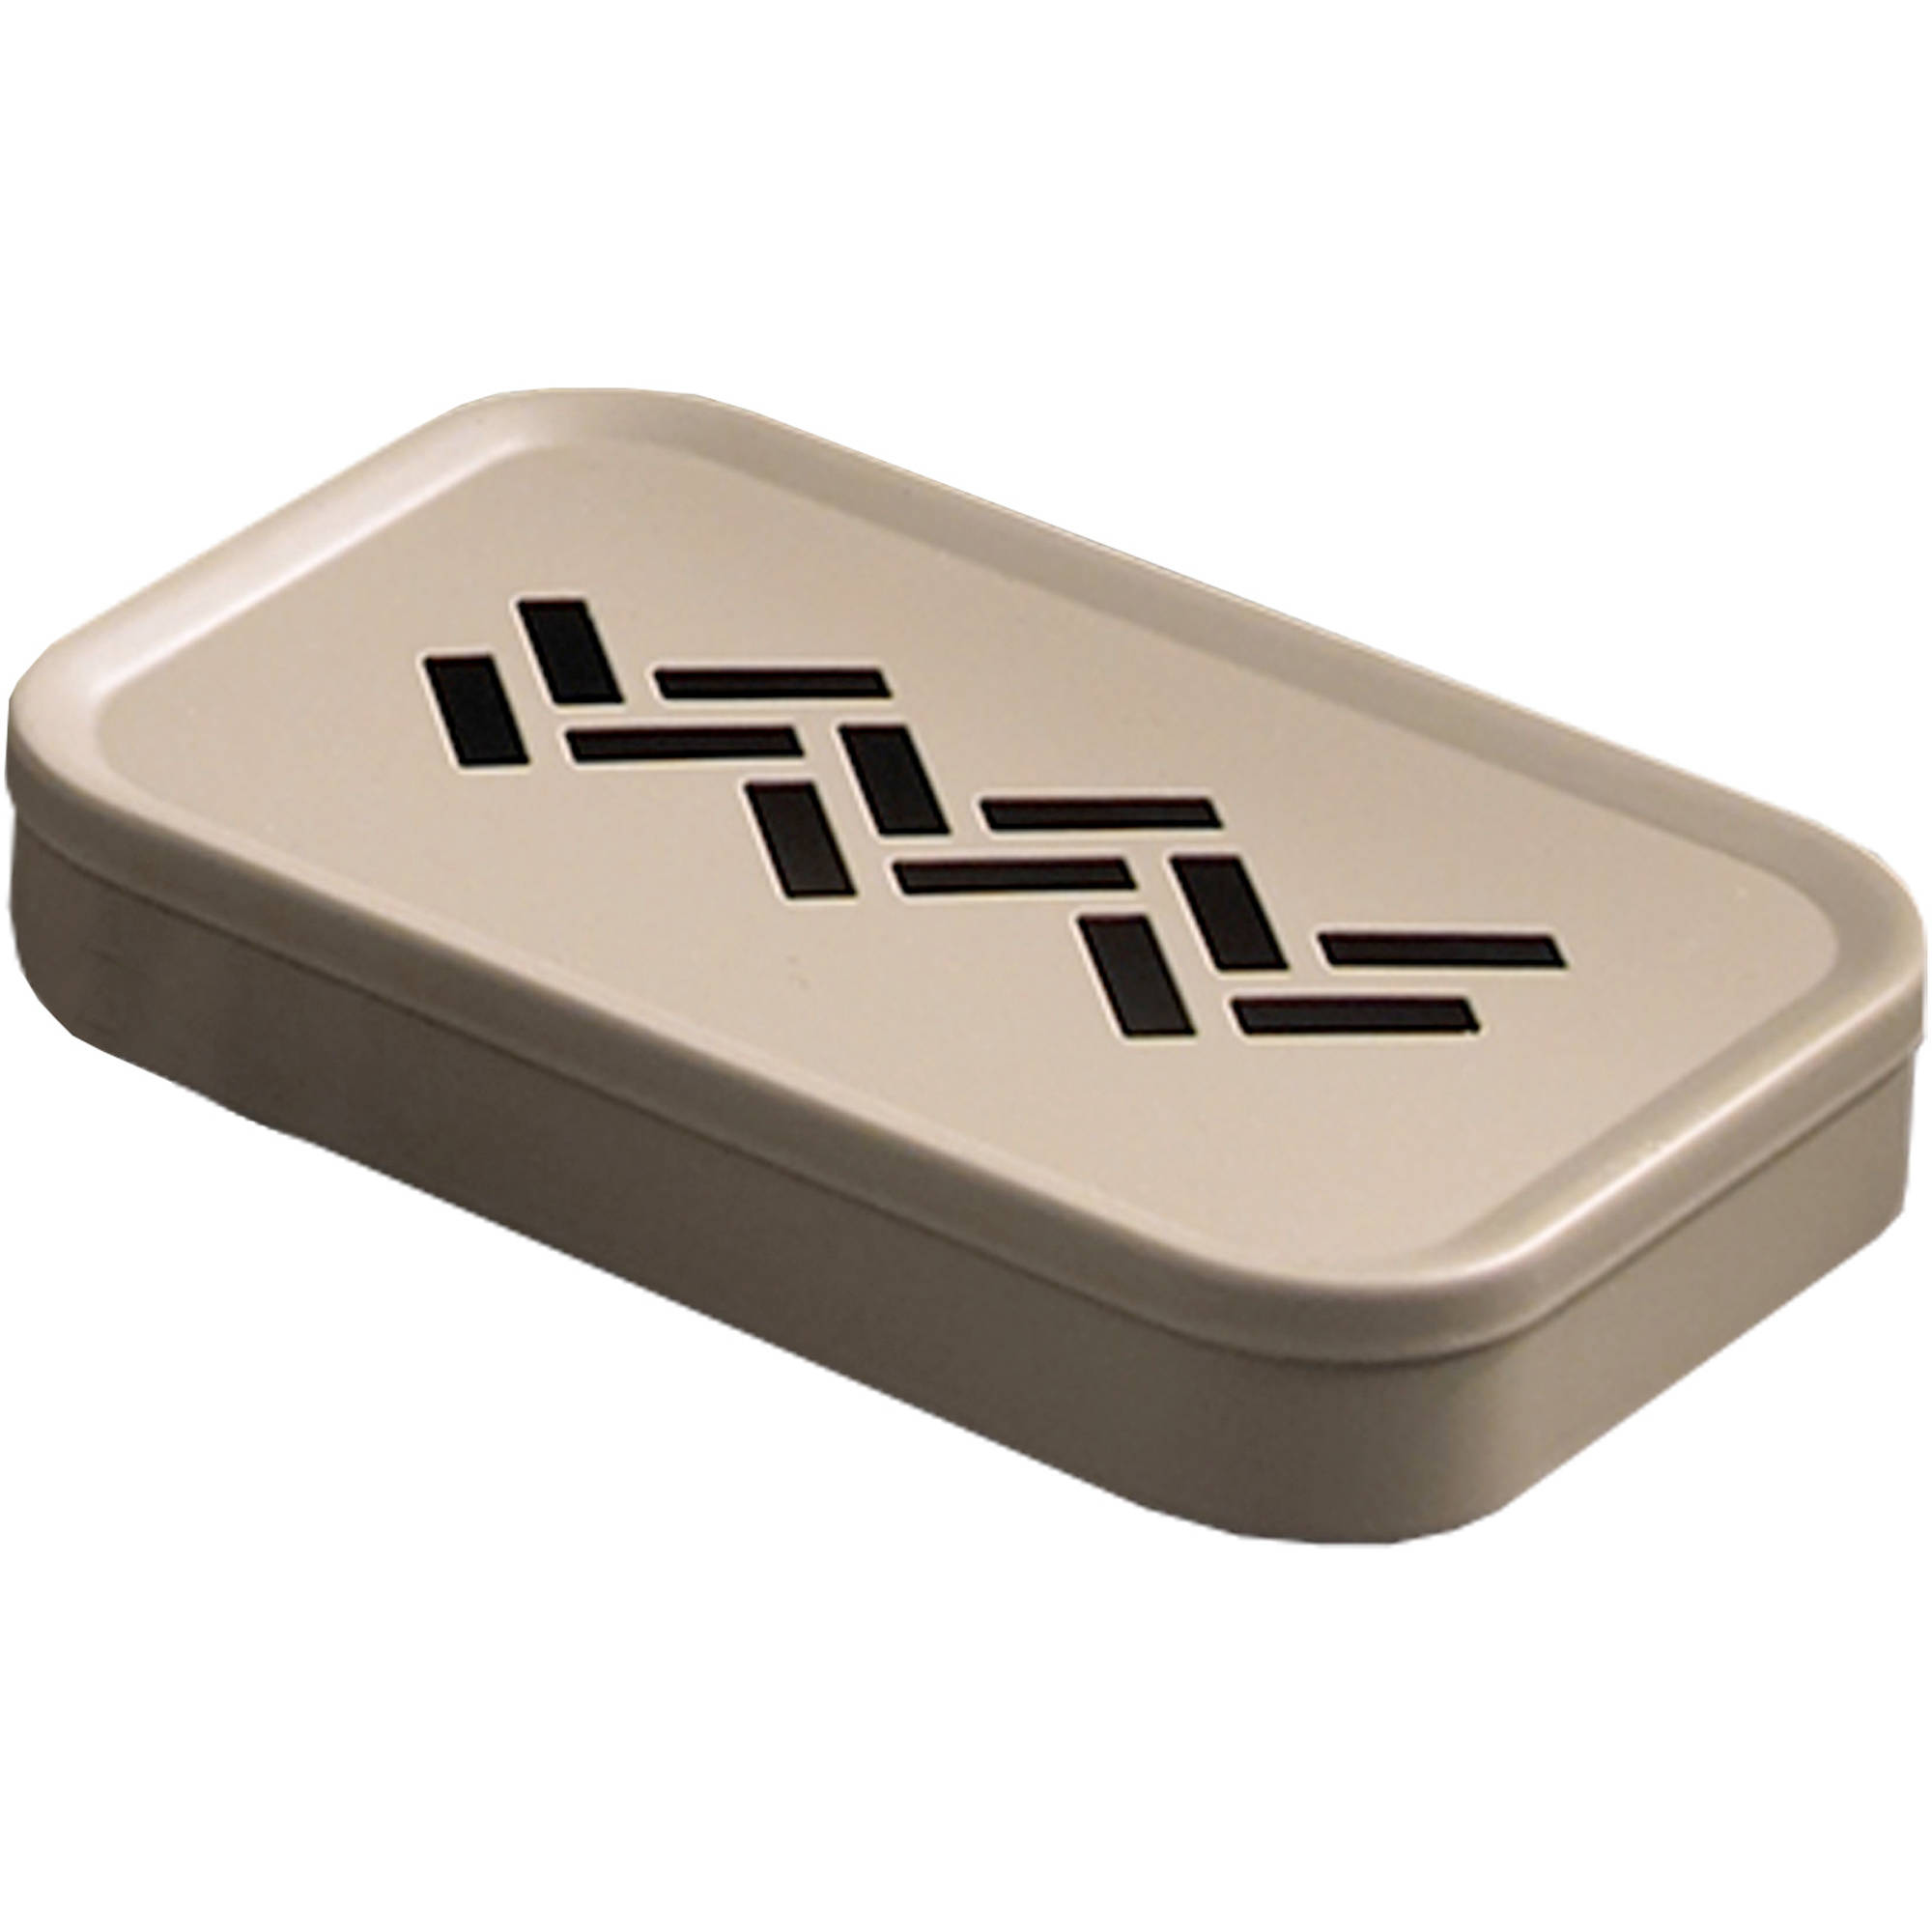 Excell Walkway Soap Dish, Taupe